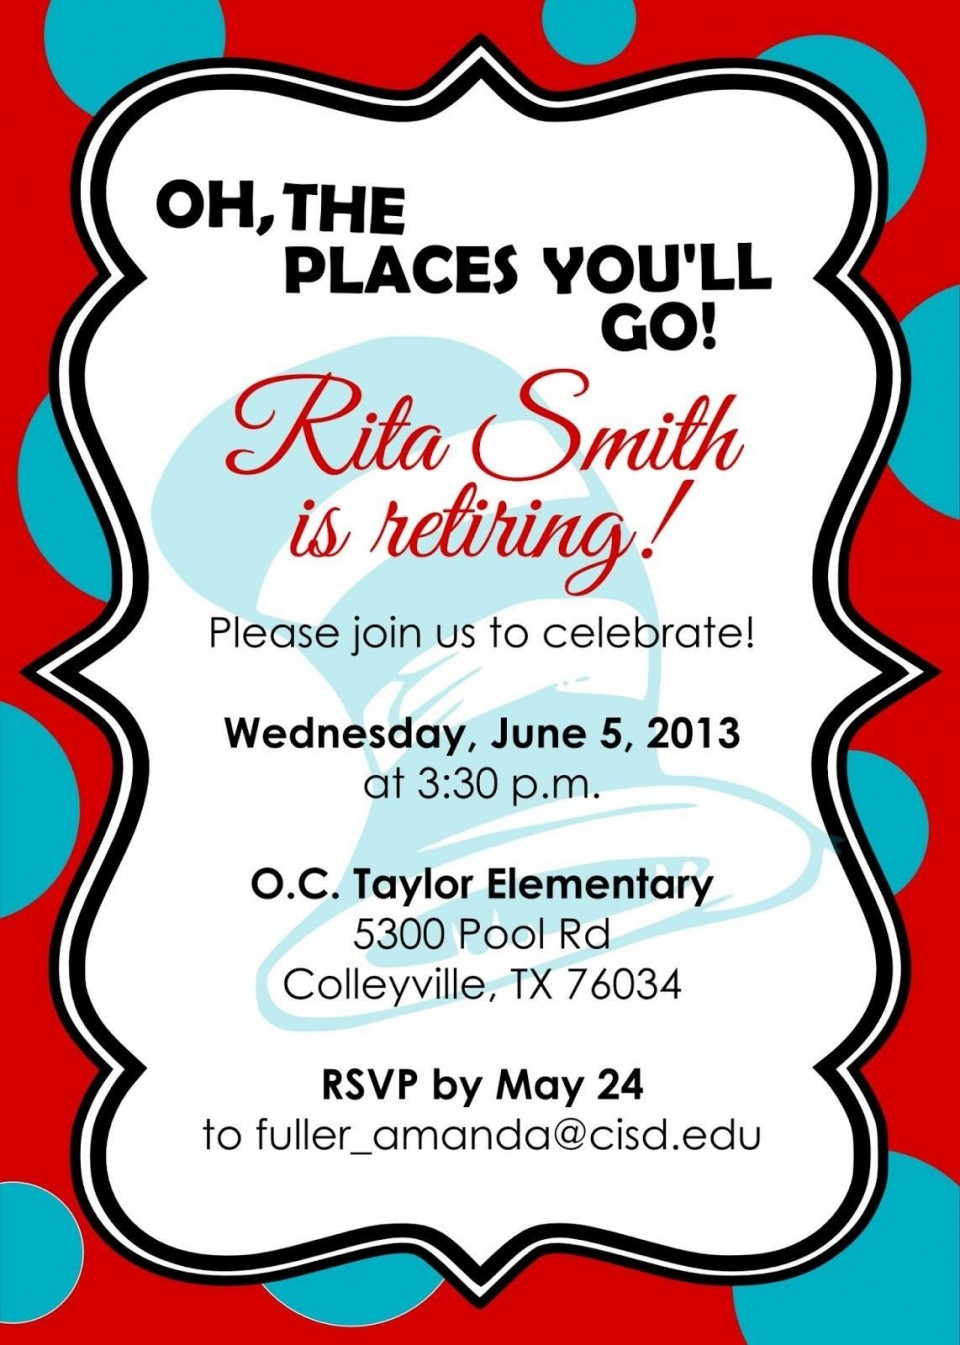 007 Incredible Retirement Party Invite Template Word Free Picture 960